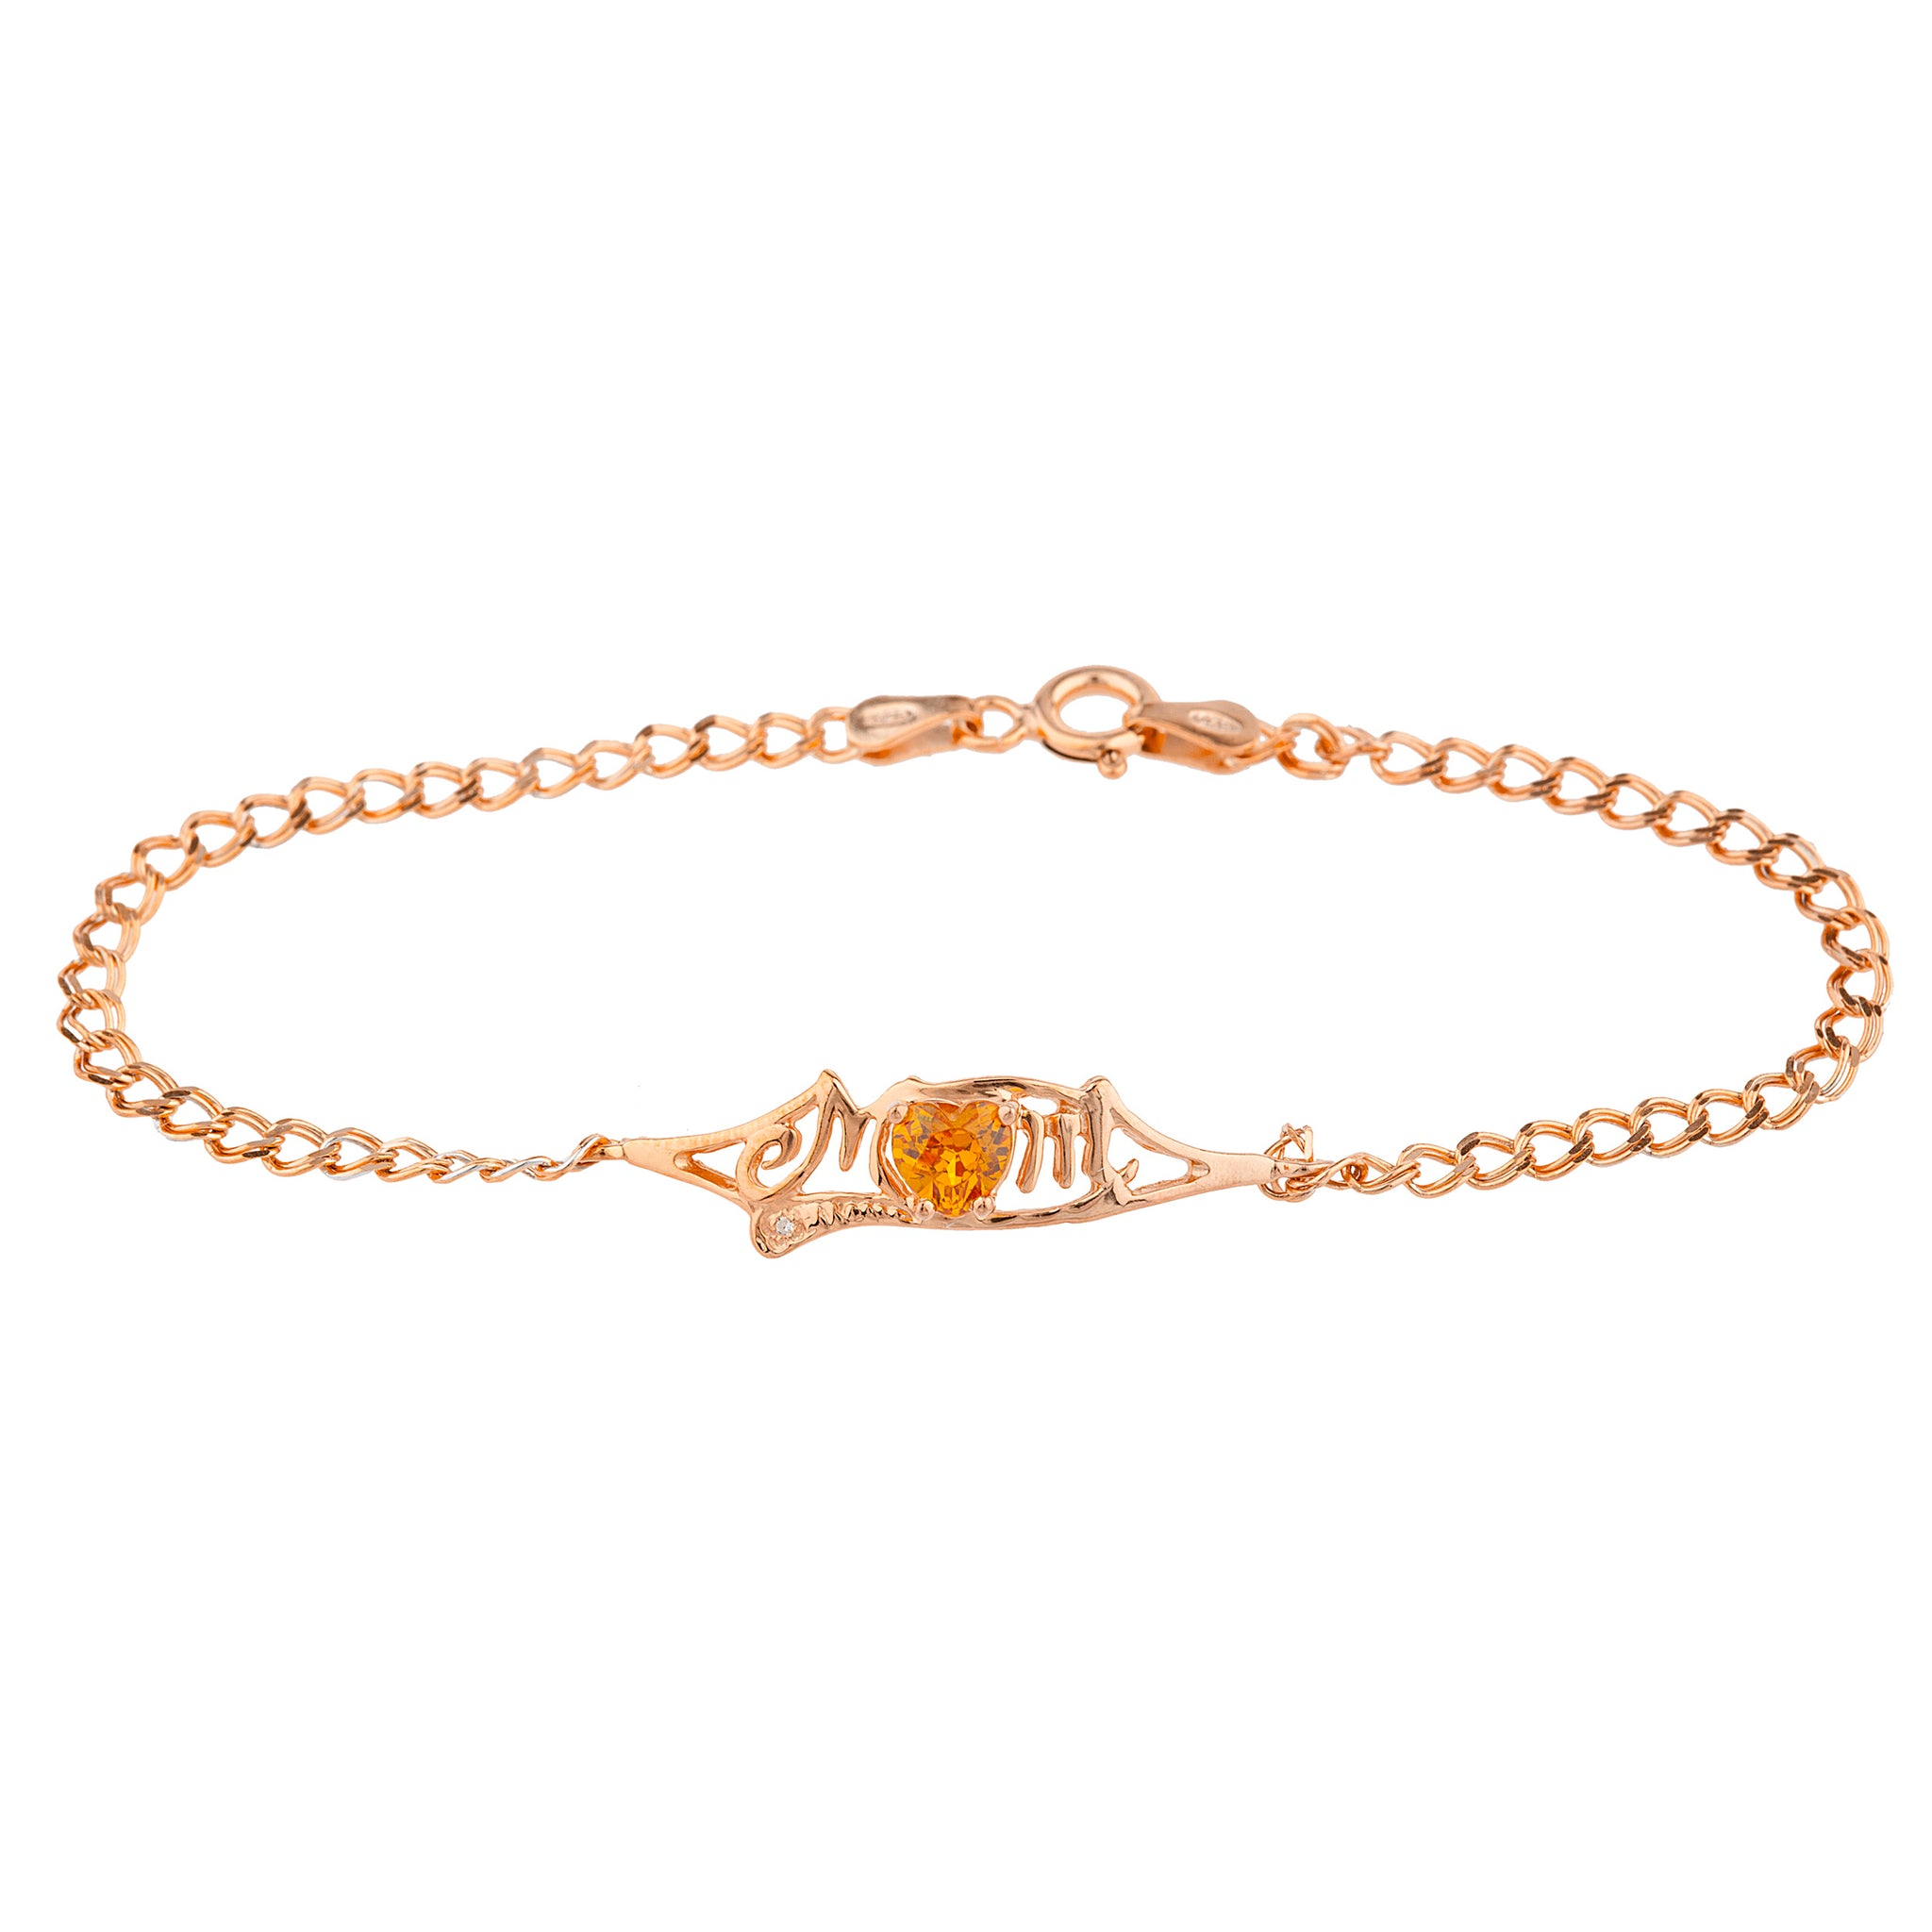 Orange Citrine & Diamond Heart Mom Bracelet 14Kt Rose Gold Plated Over .925 Sterling Silver